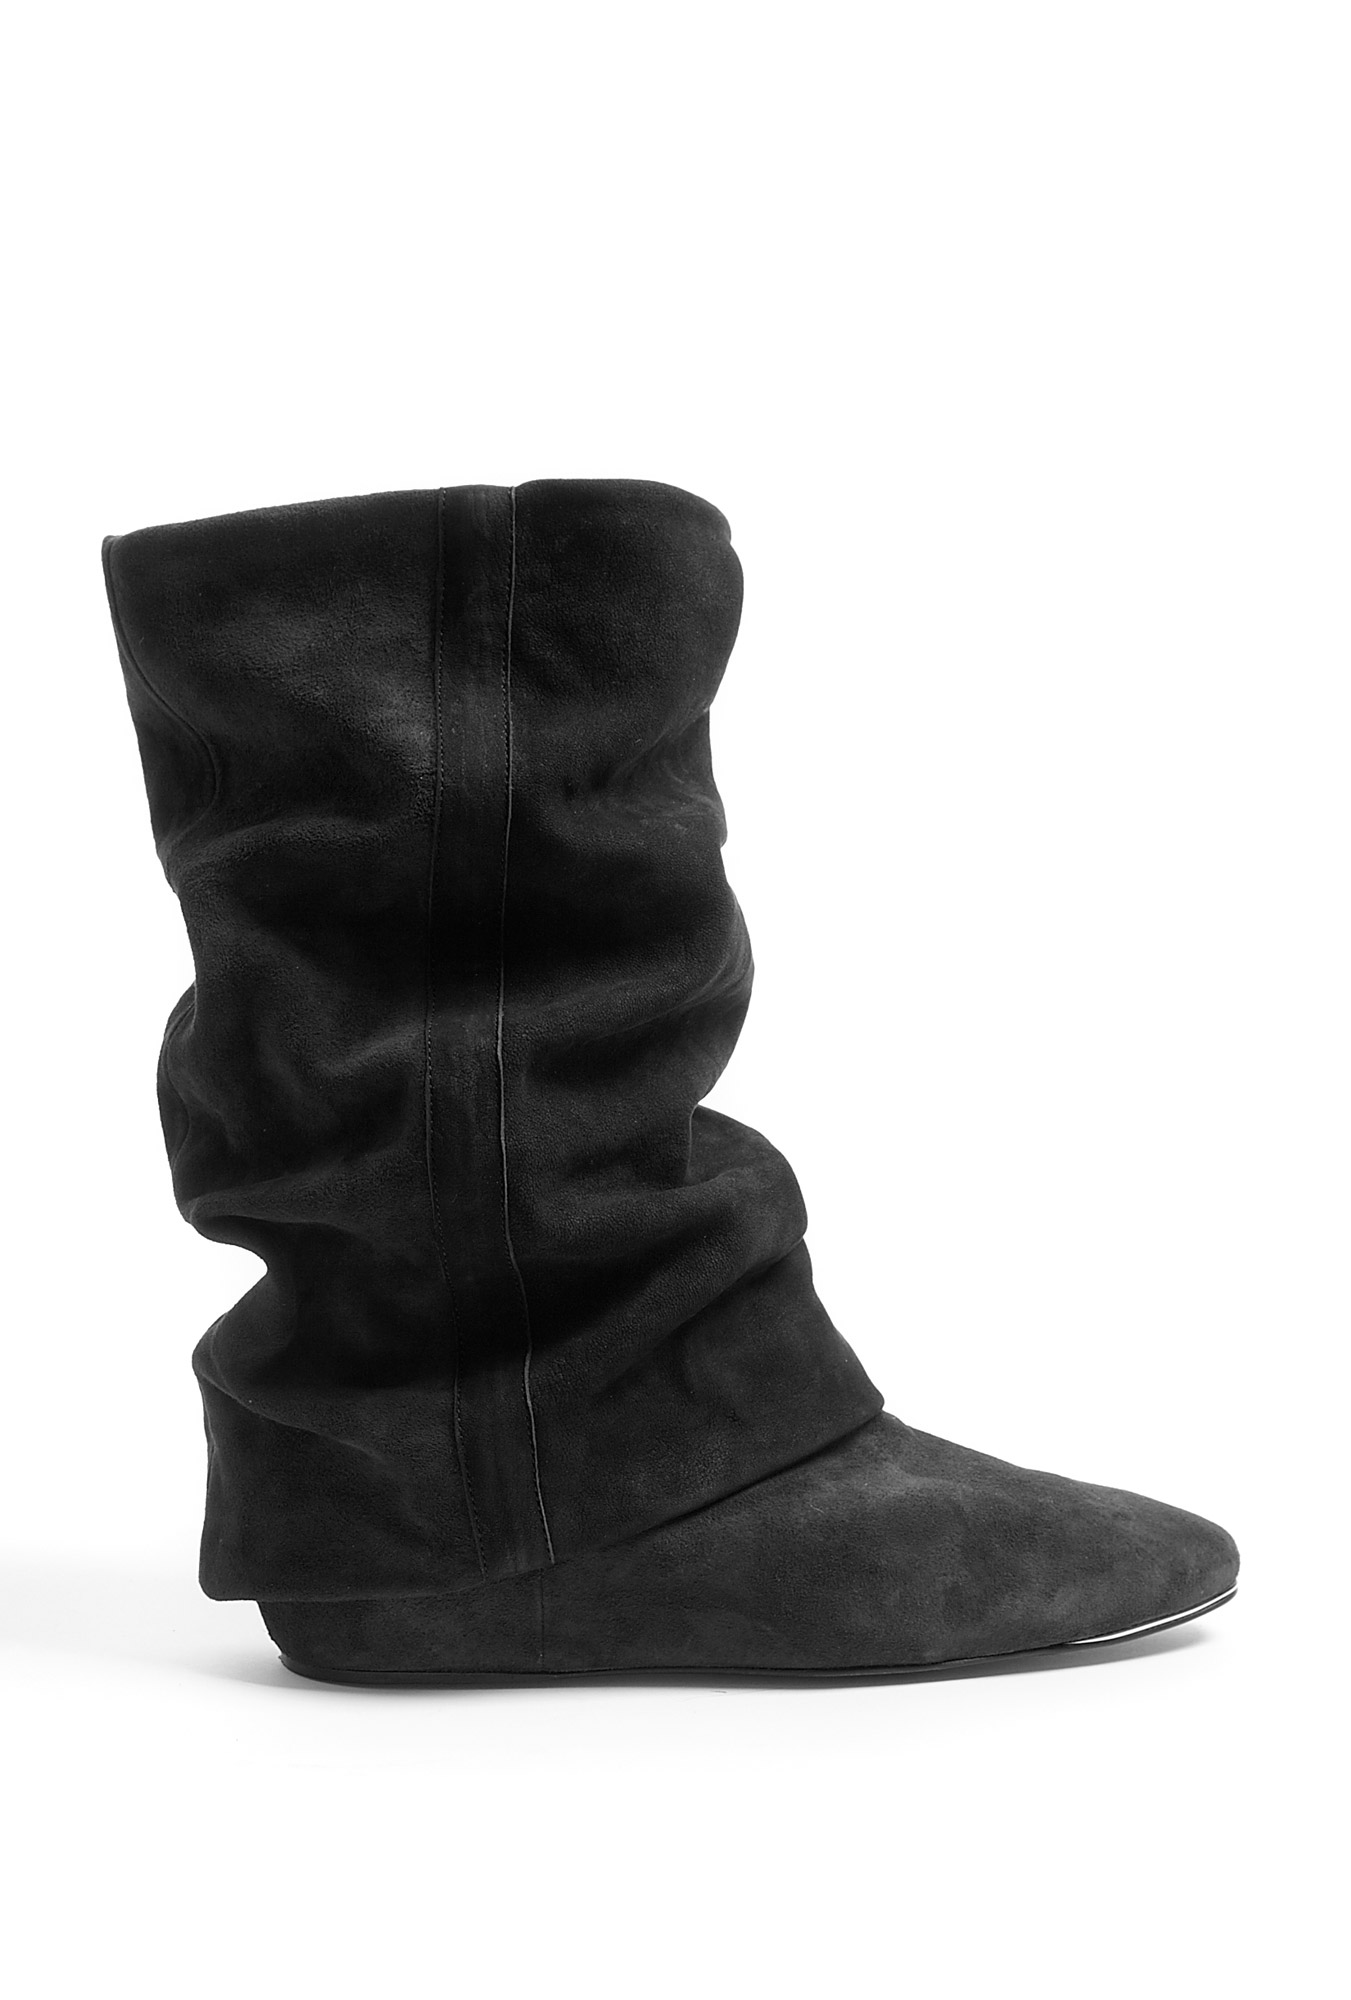 see by chlo 233 black suede fold flat boots in black lyst